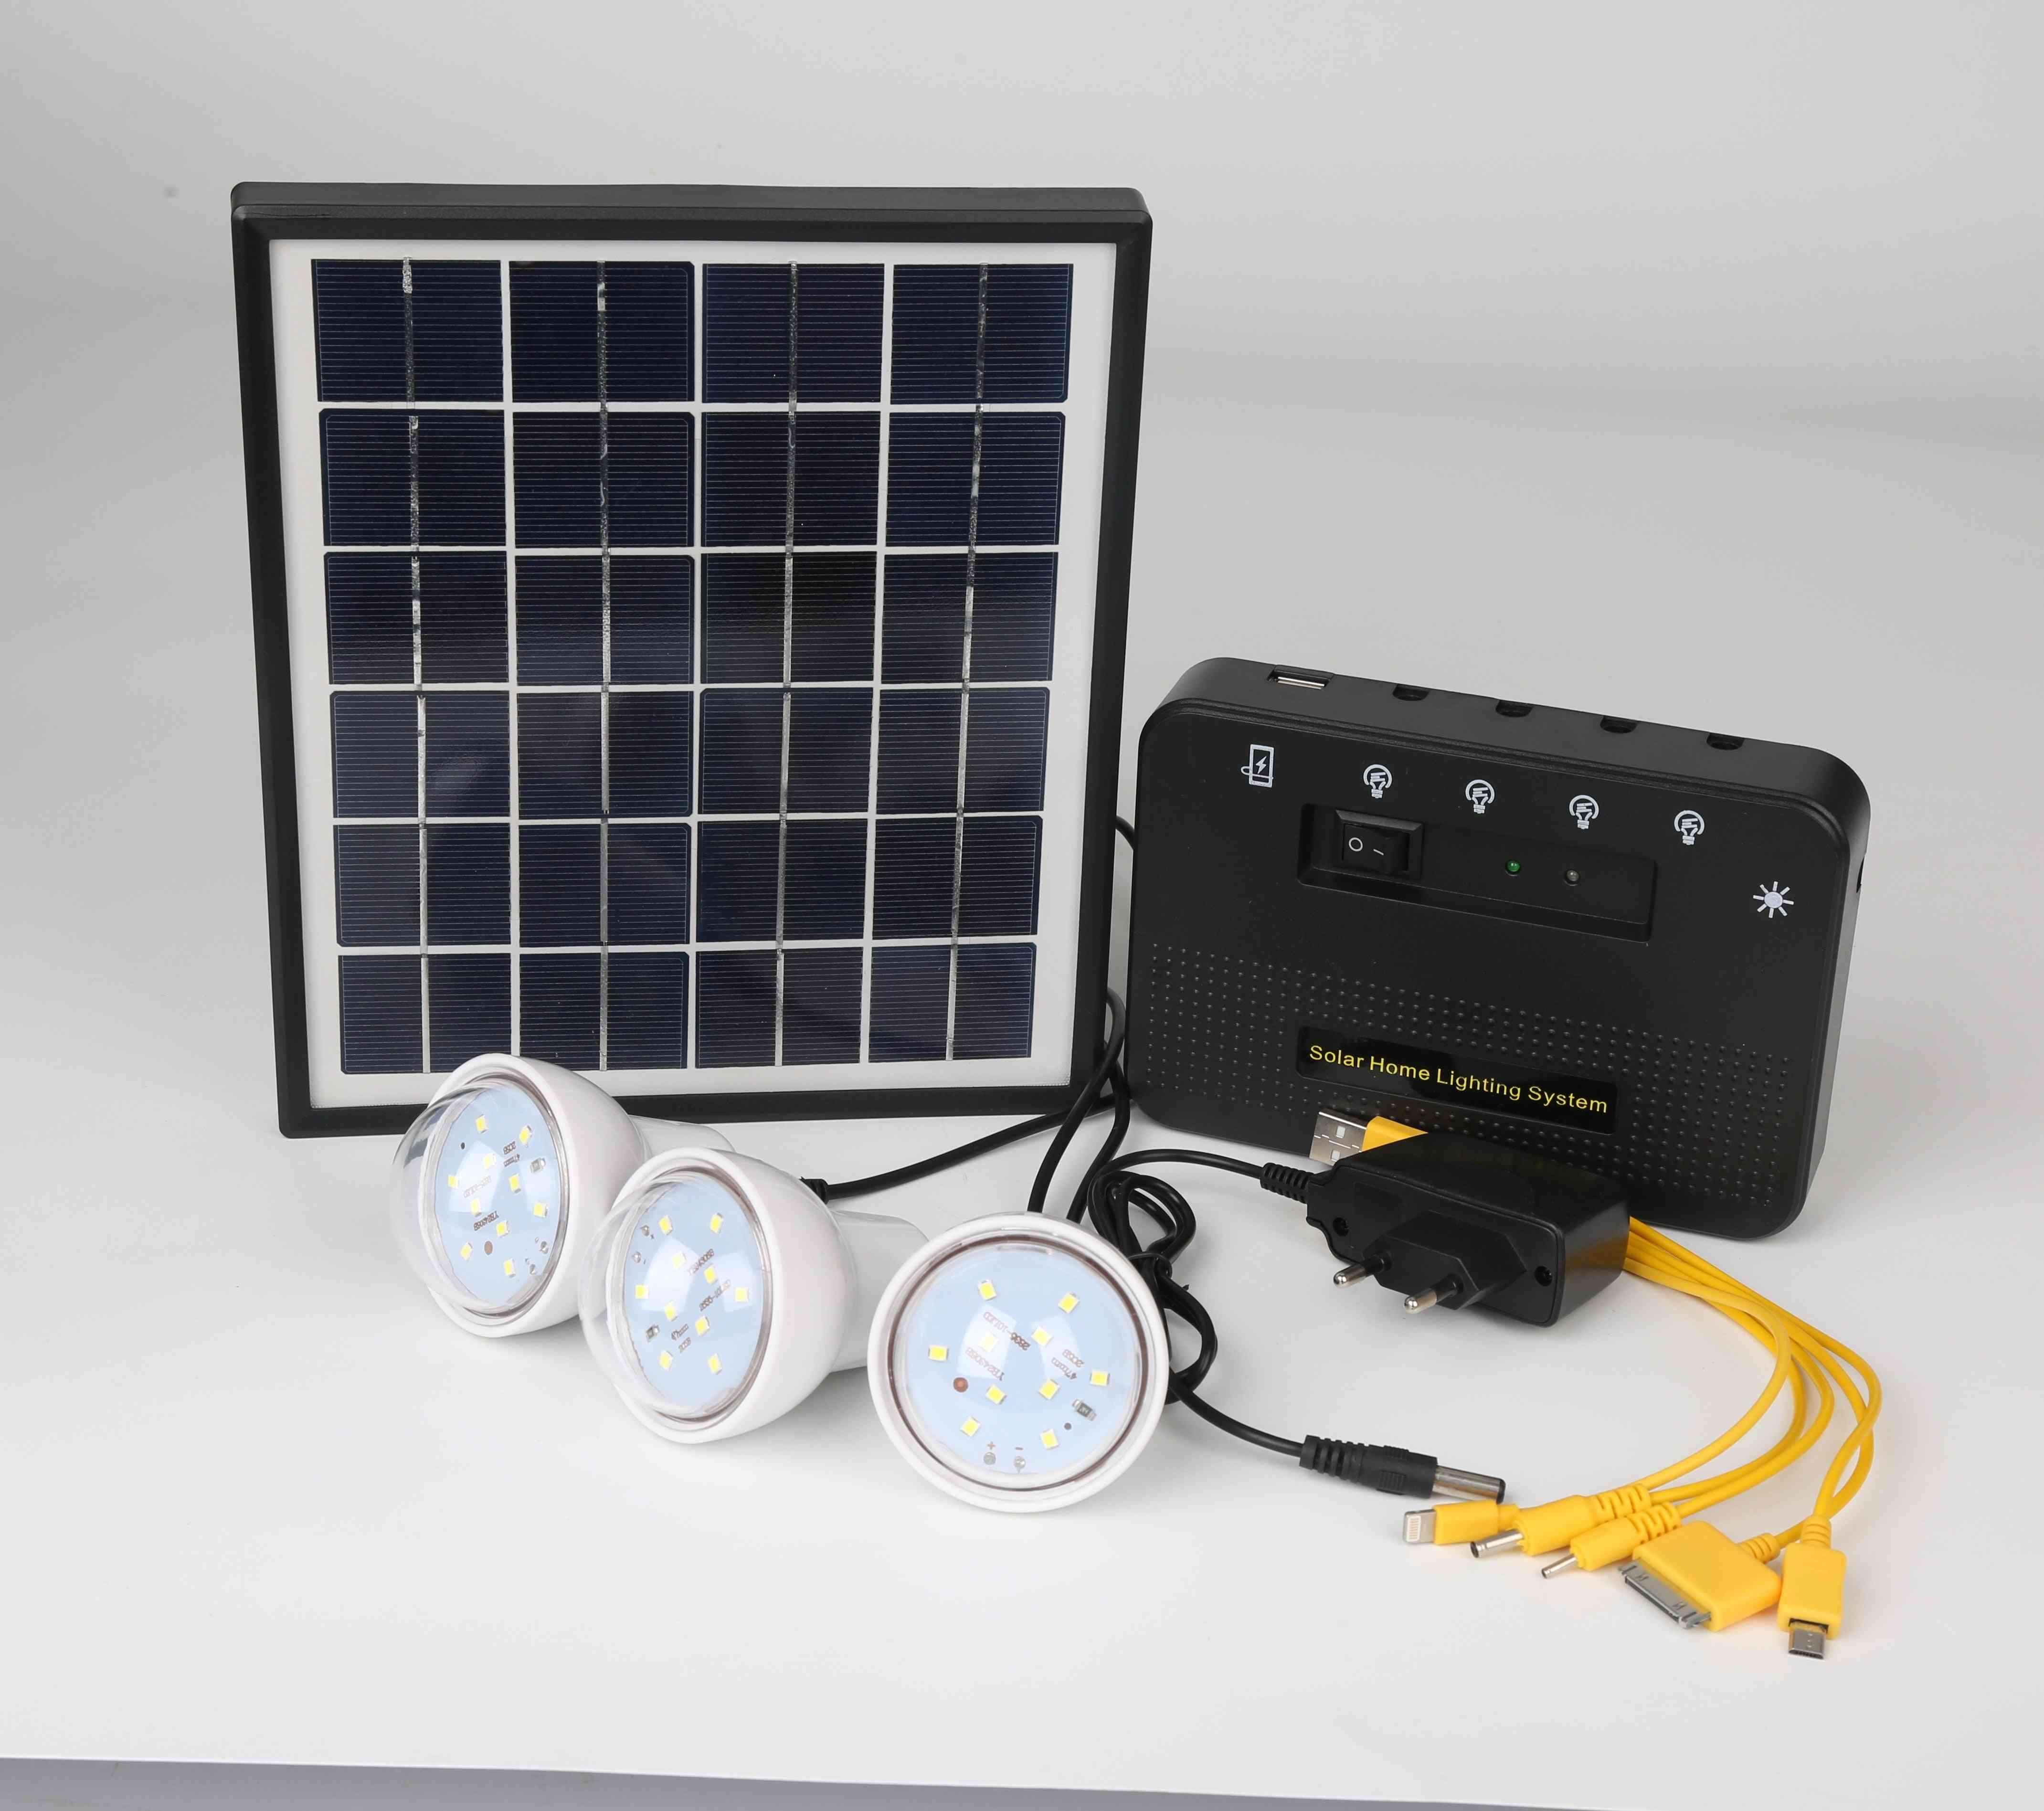 1.5w Portable Solar Home Lighting Systems With 3 Meters Cable And 4.5ah Lithium Battery